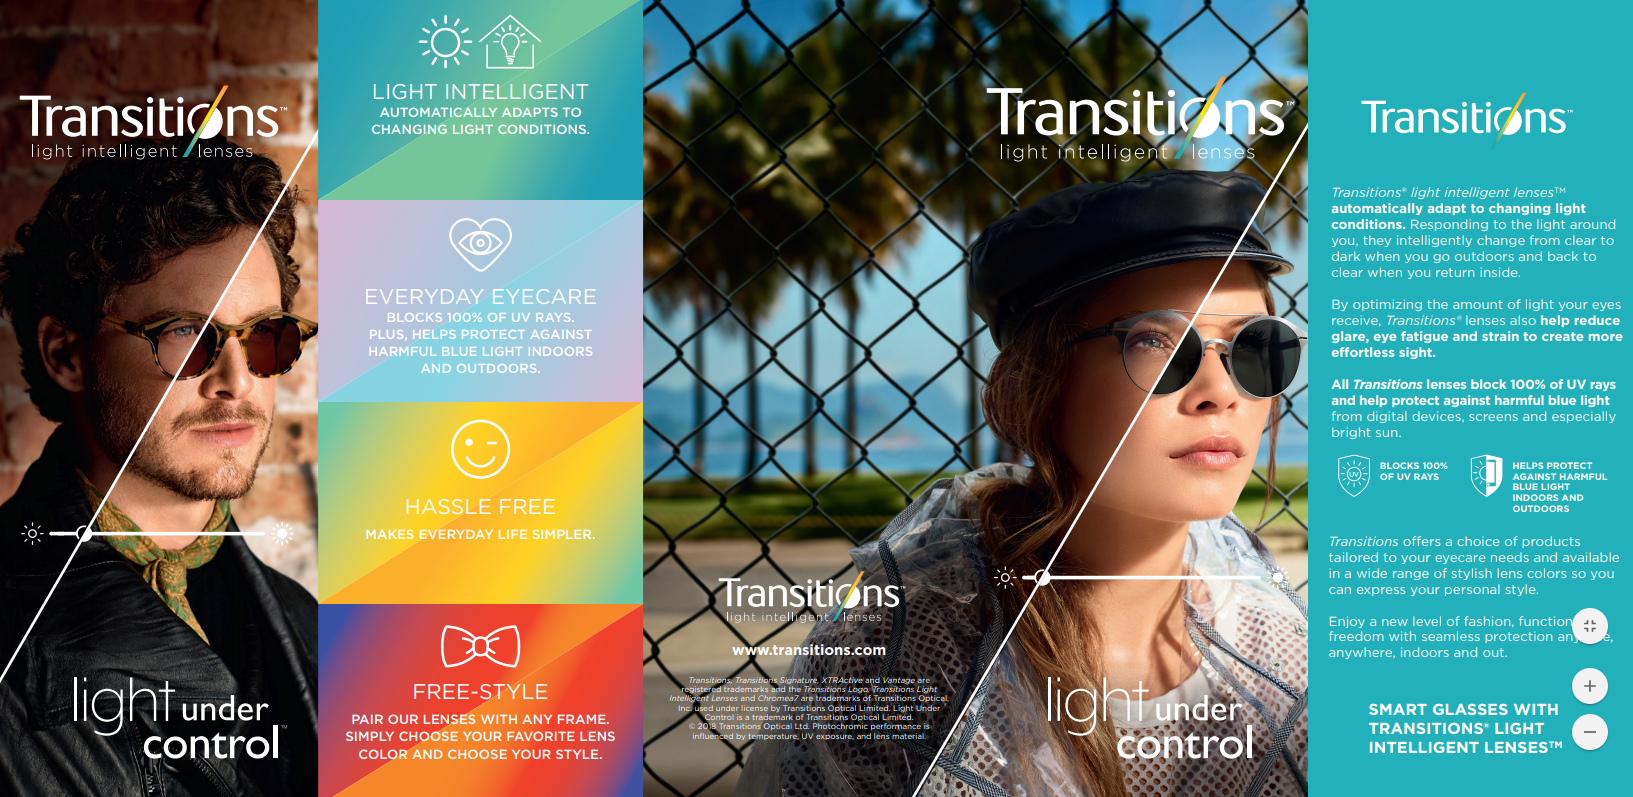 Transitions Lens options